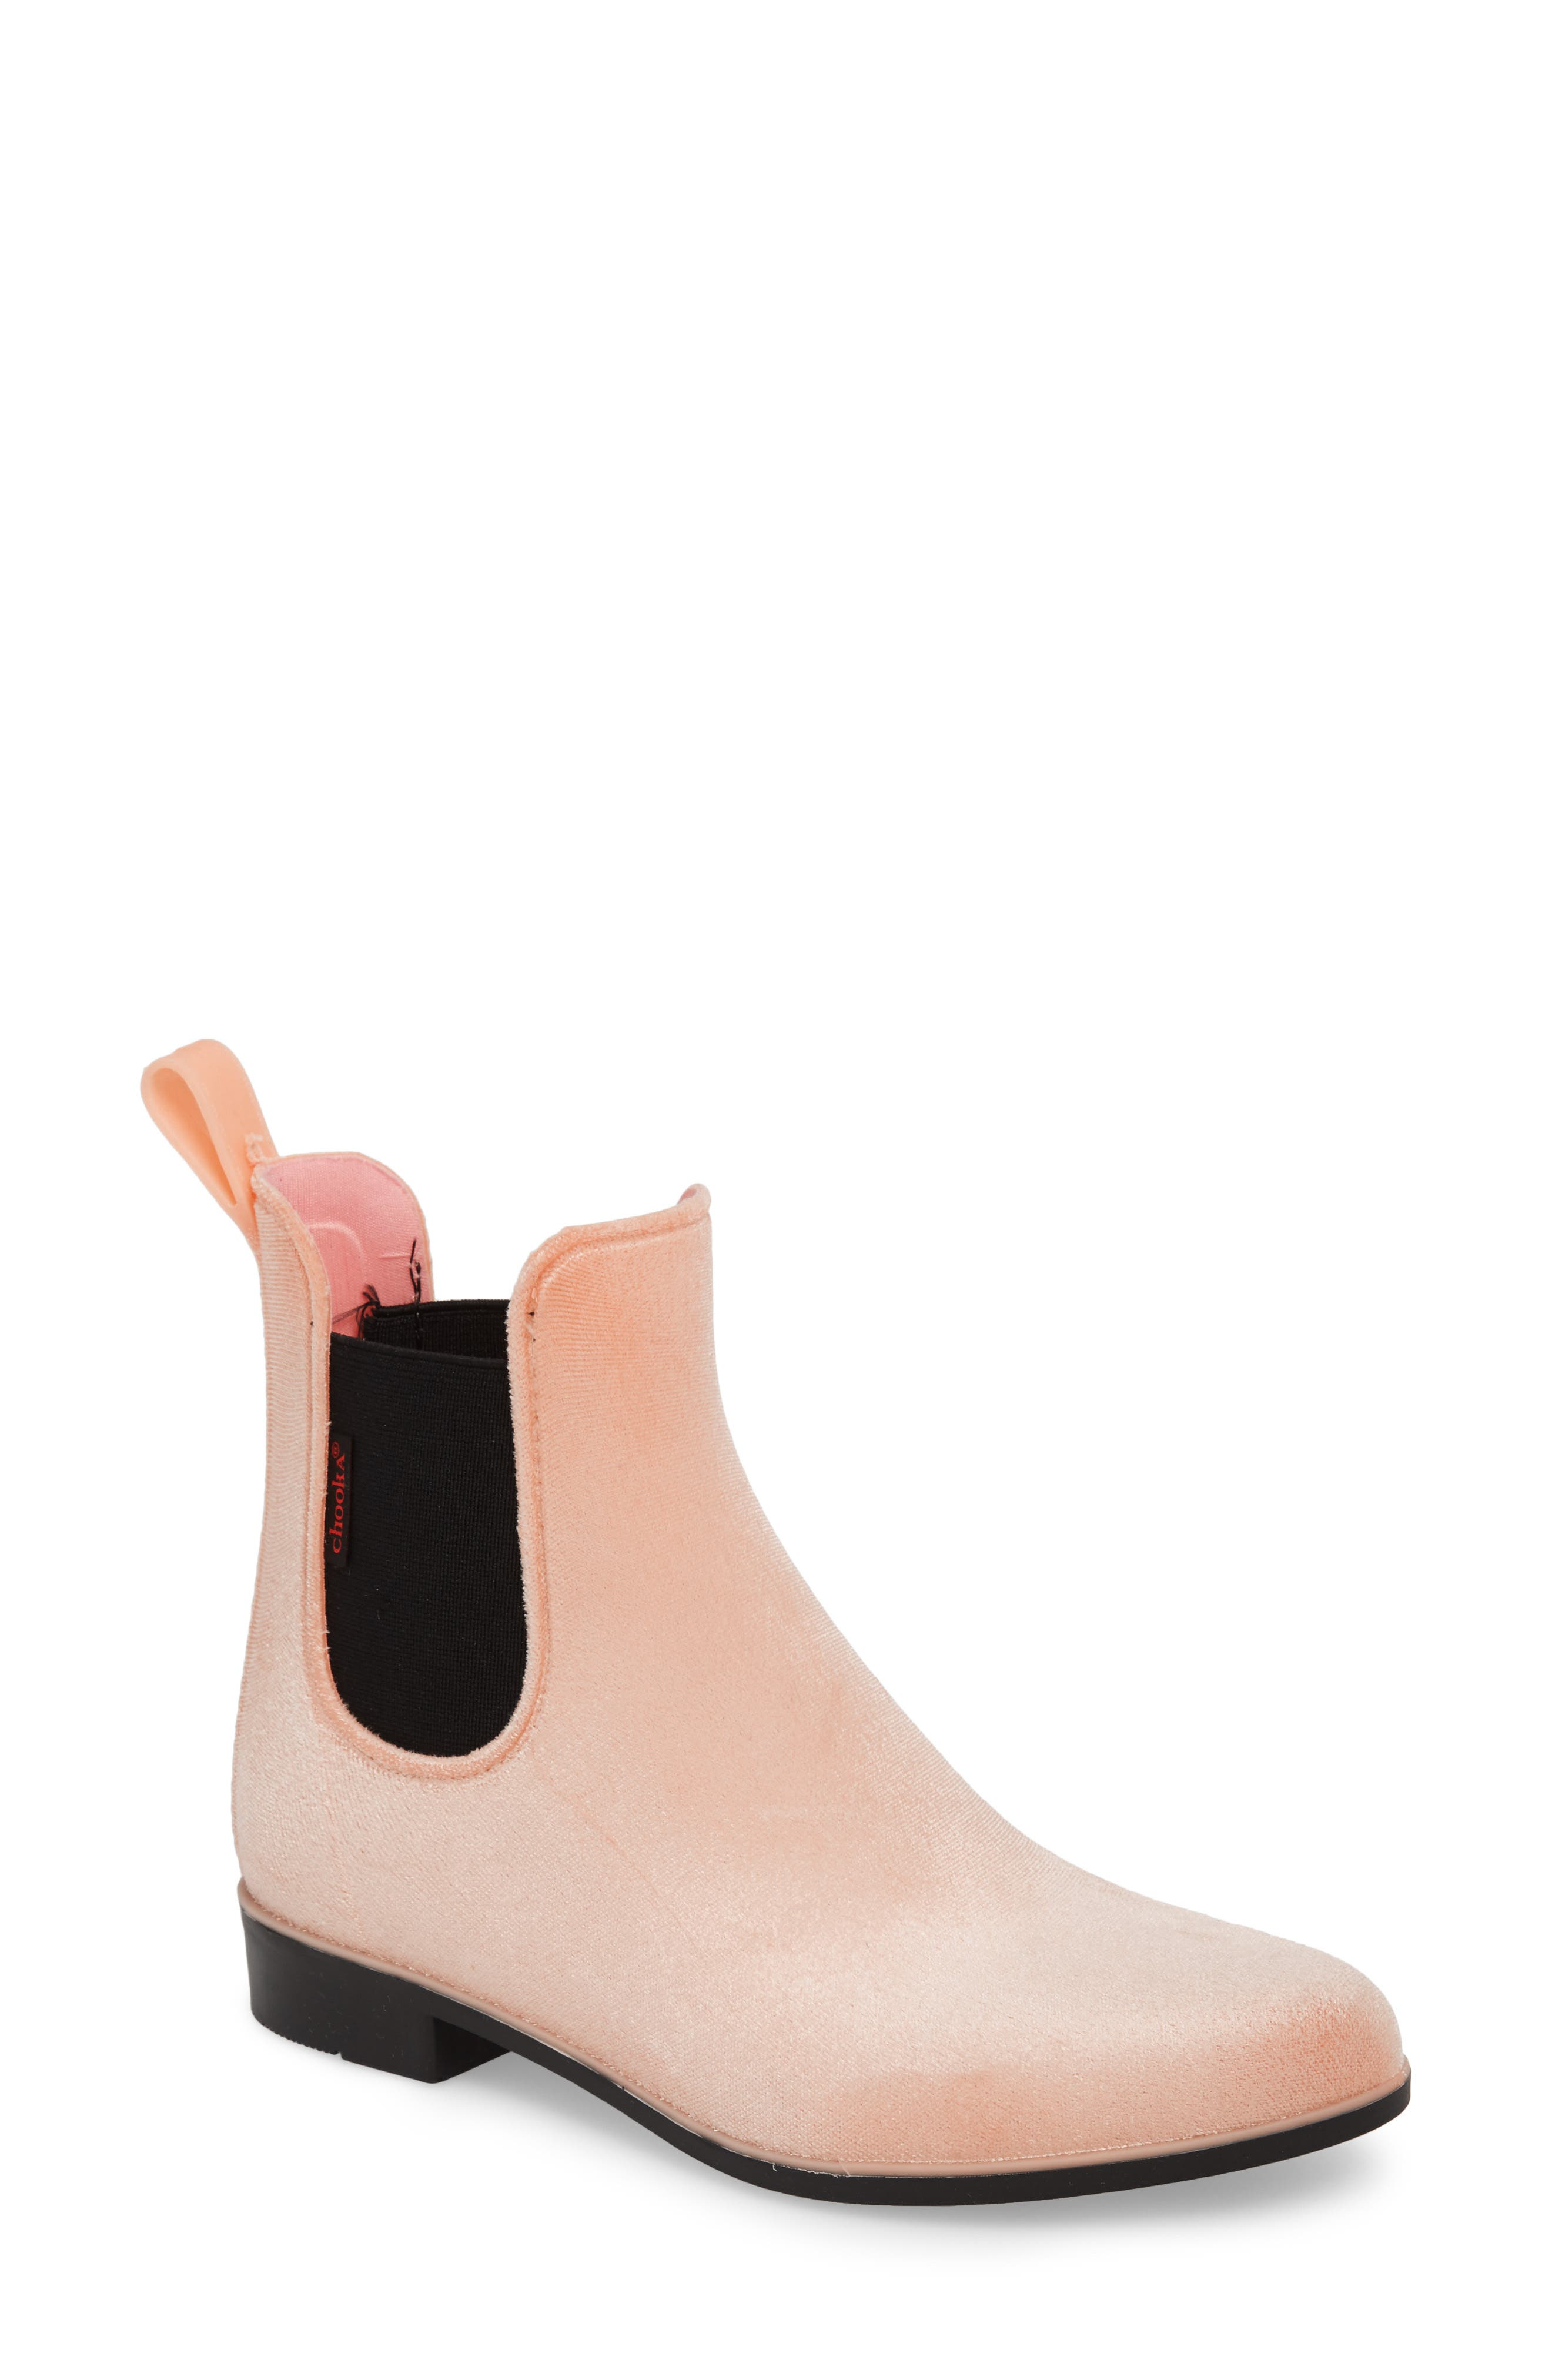 Bainbridge Chelsea Rain Boot,                             Main thumbnail 1, color,                             Blush